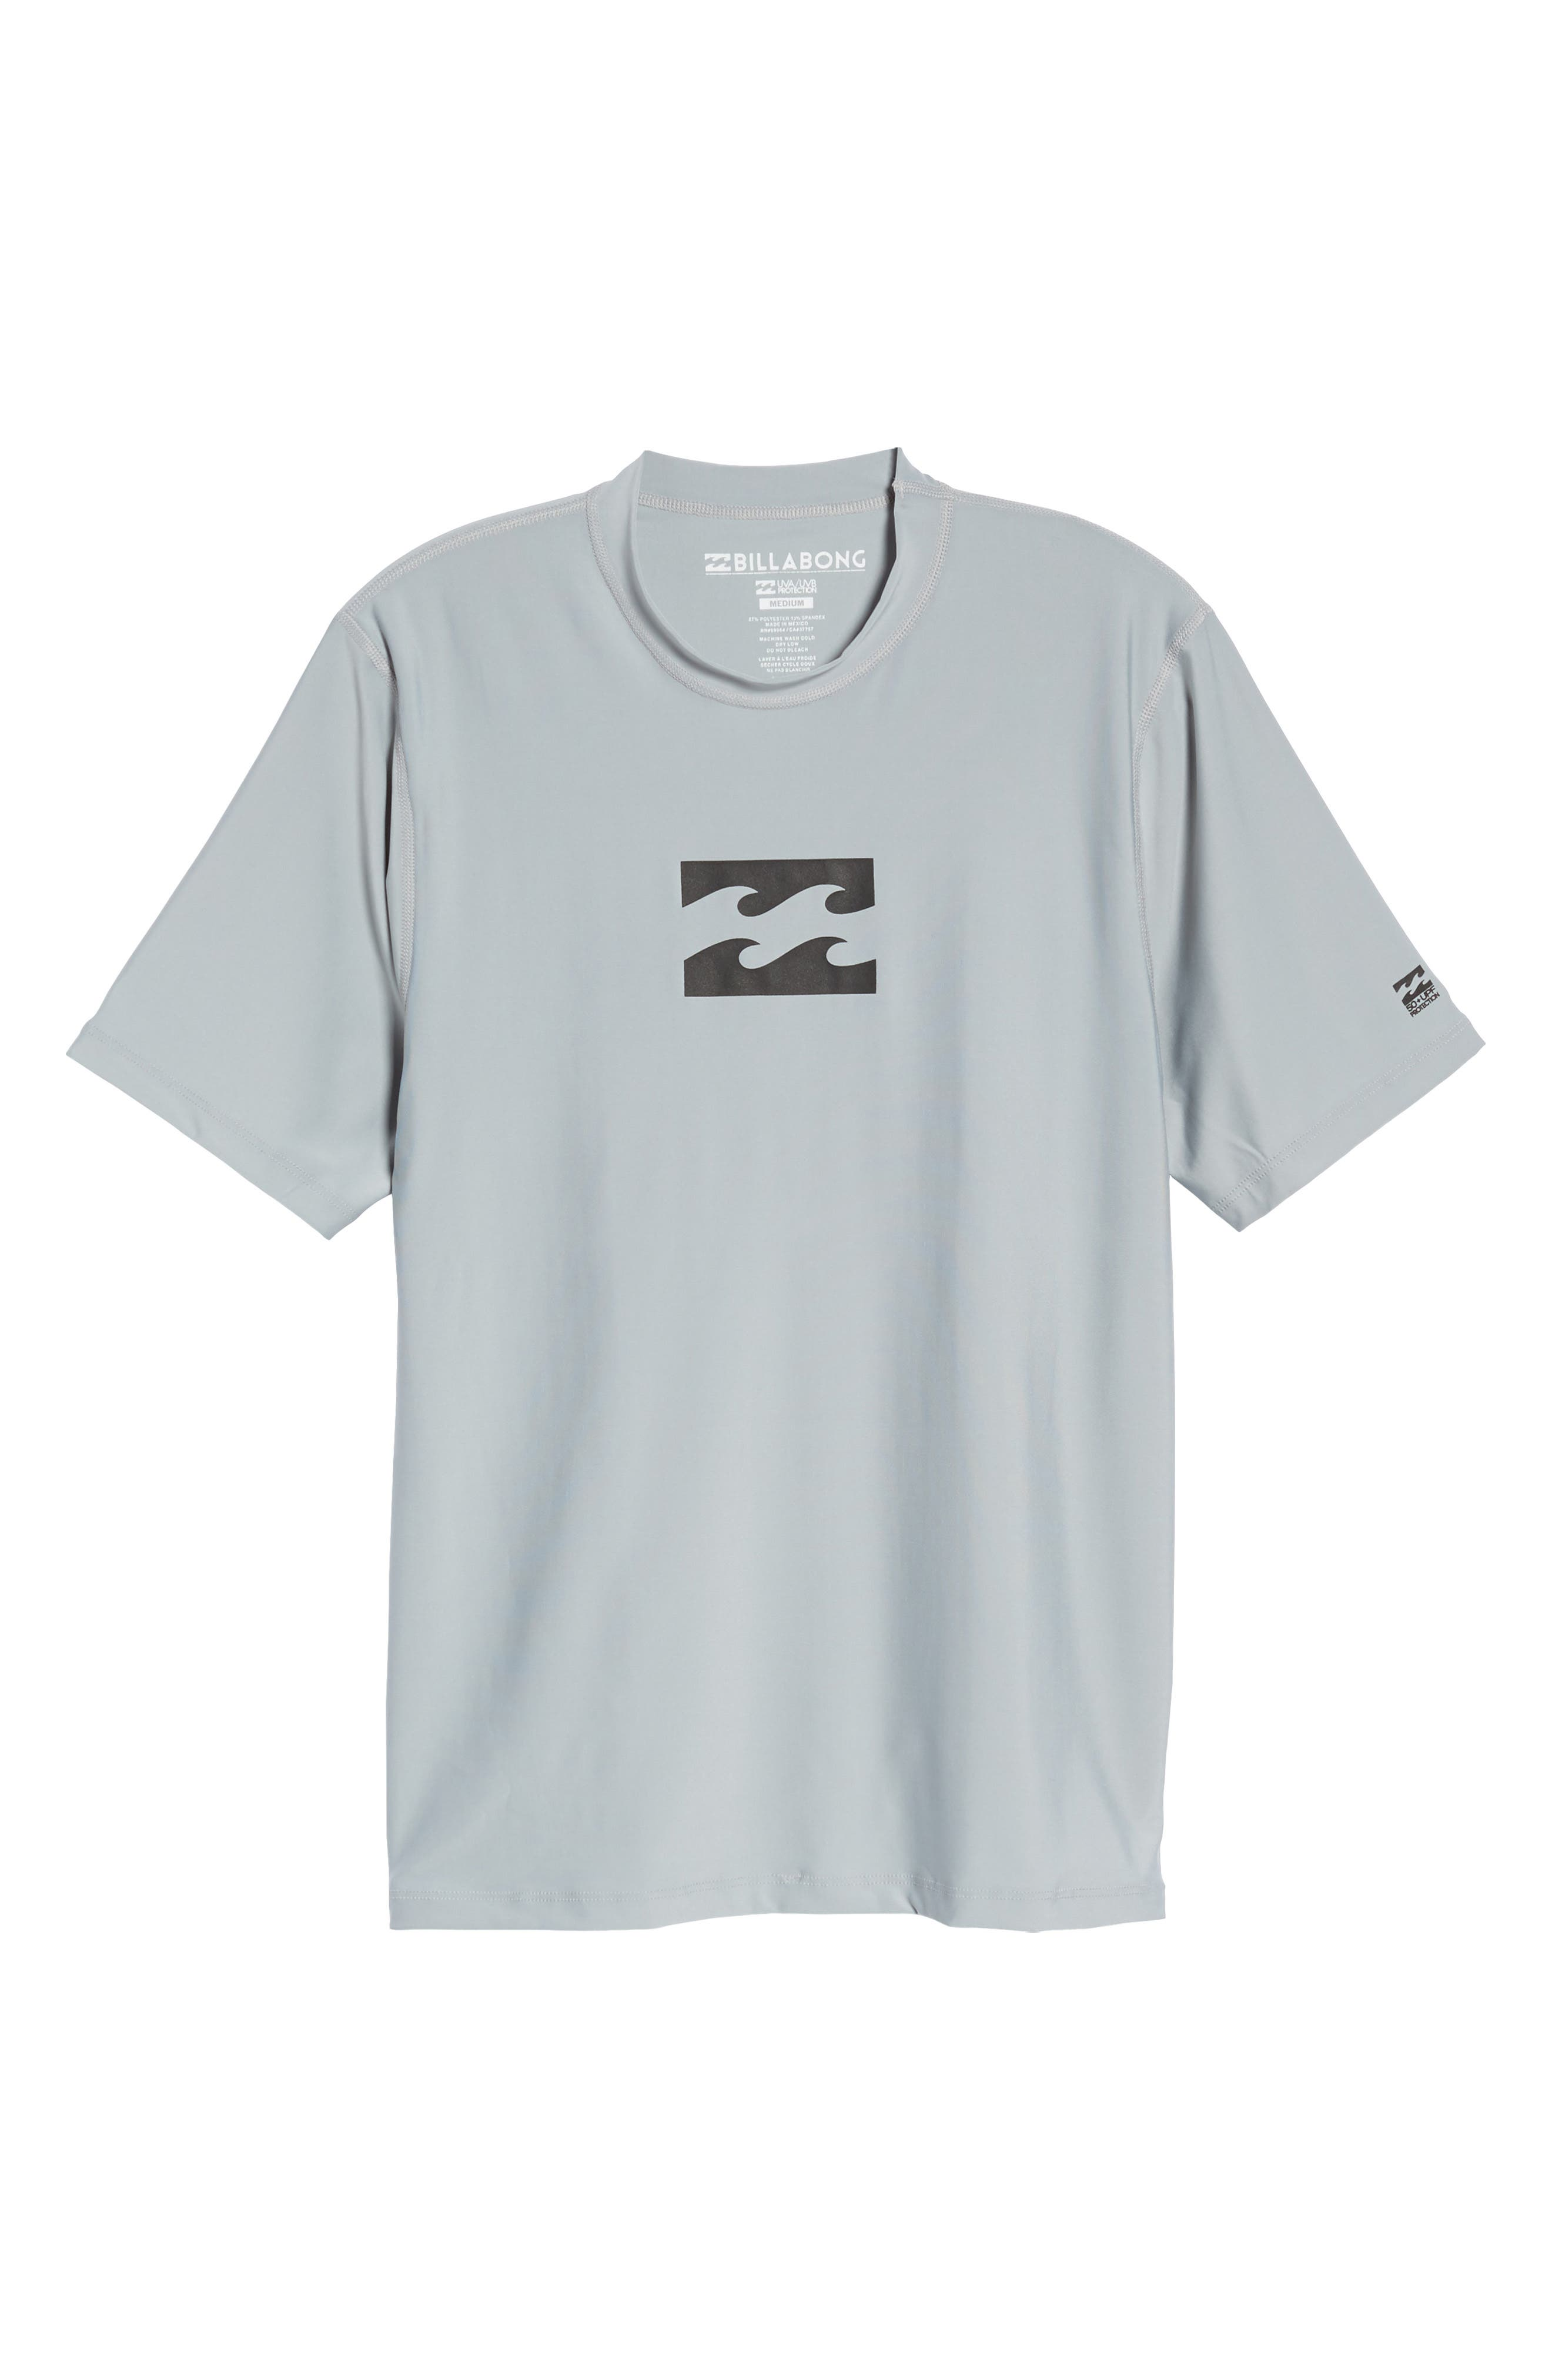 All Day Wave Wet Shirt,                             Alternate thumbnail 6, color,                             Silver